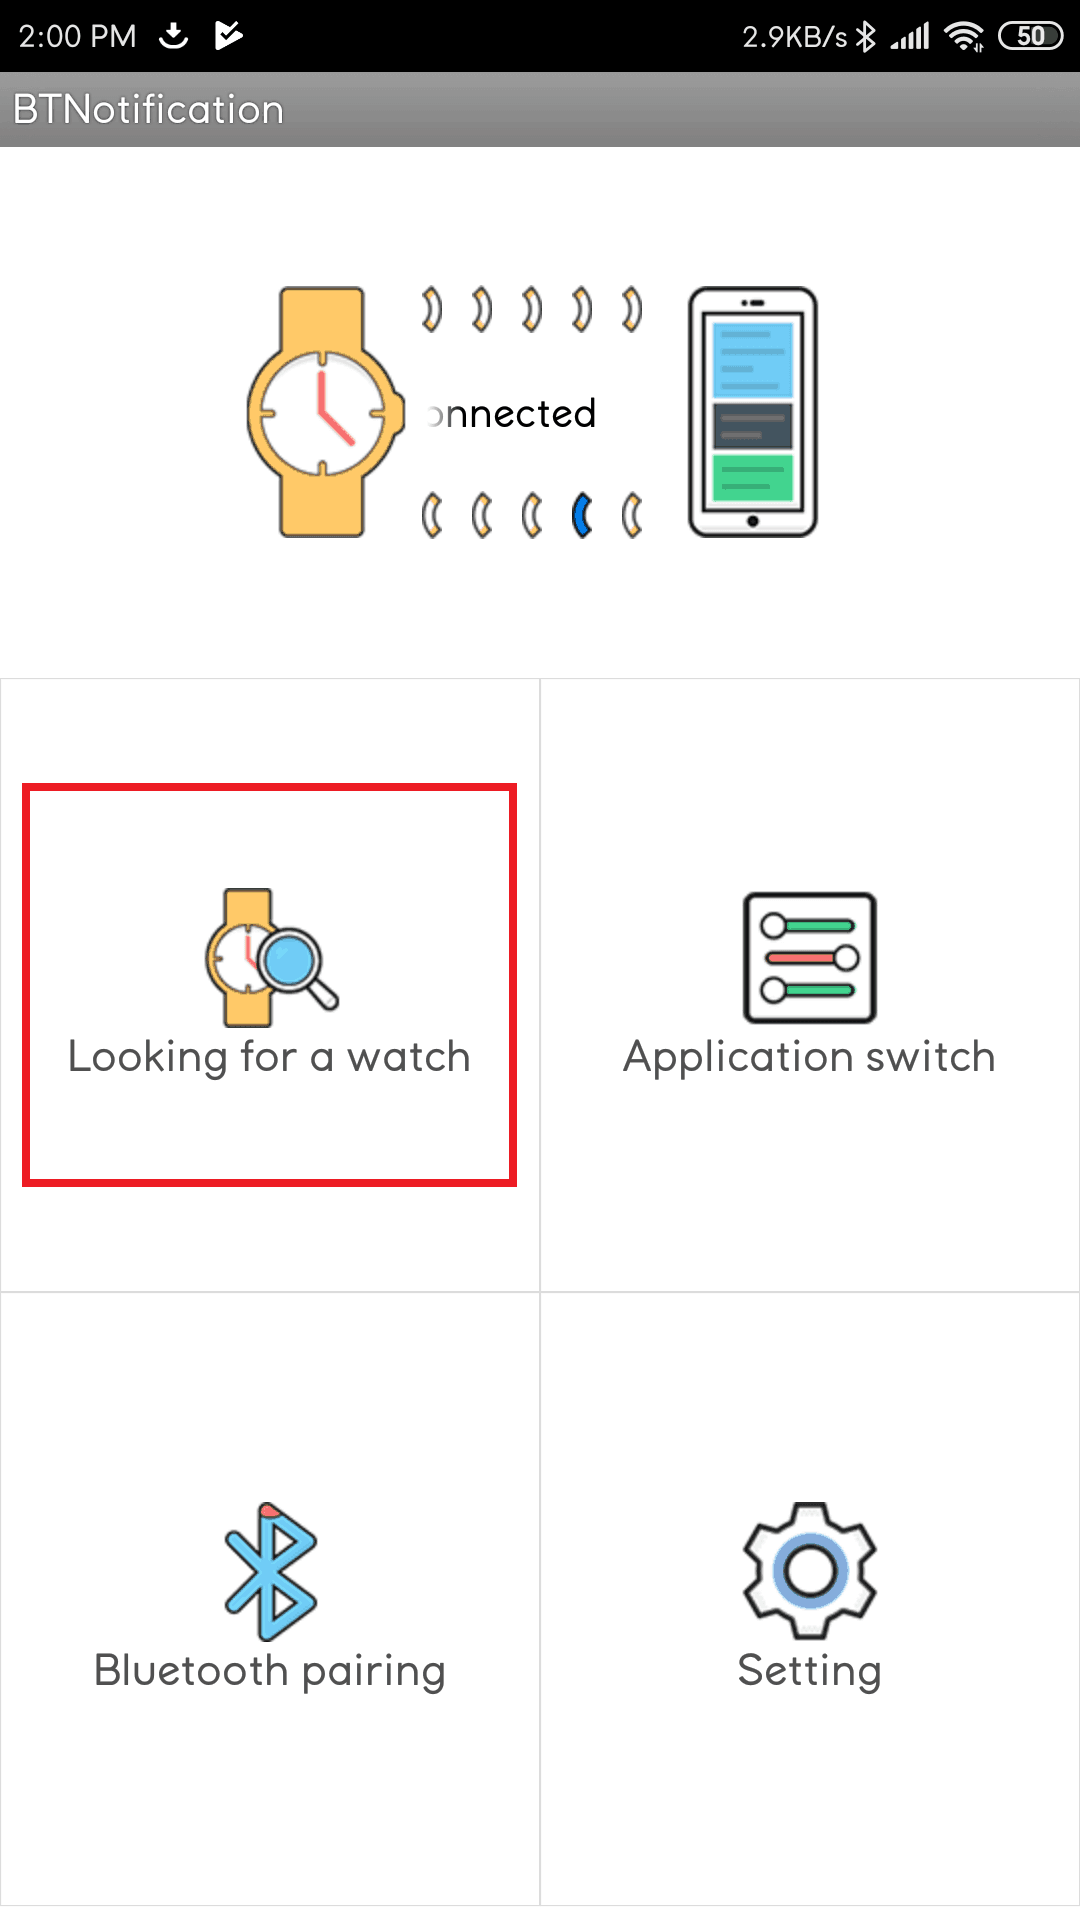 Bluetooth Notification App - Looking for a watch